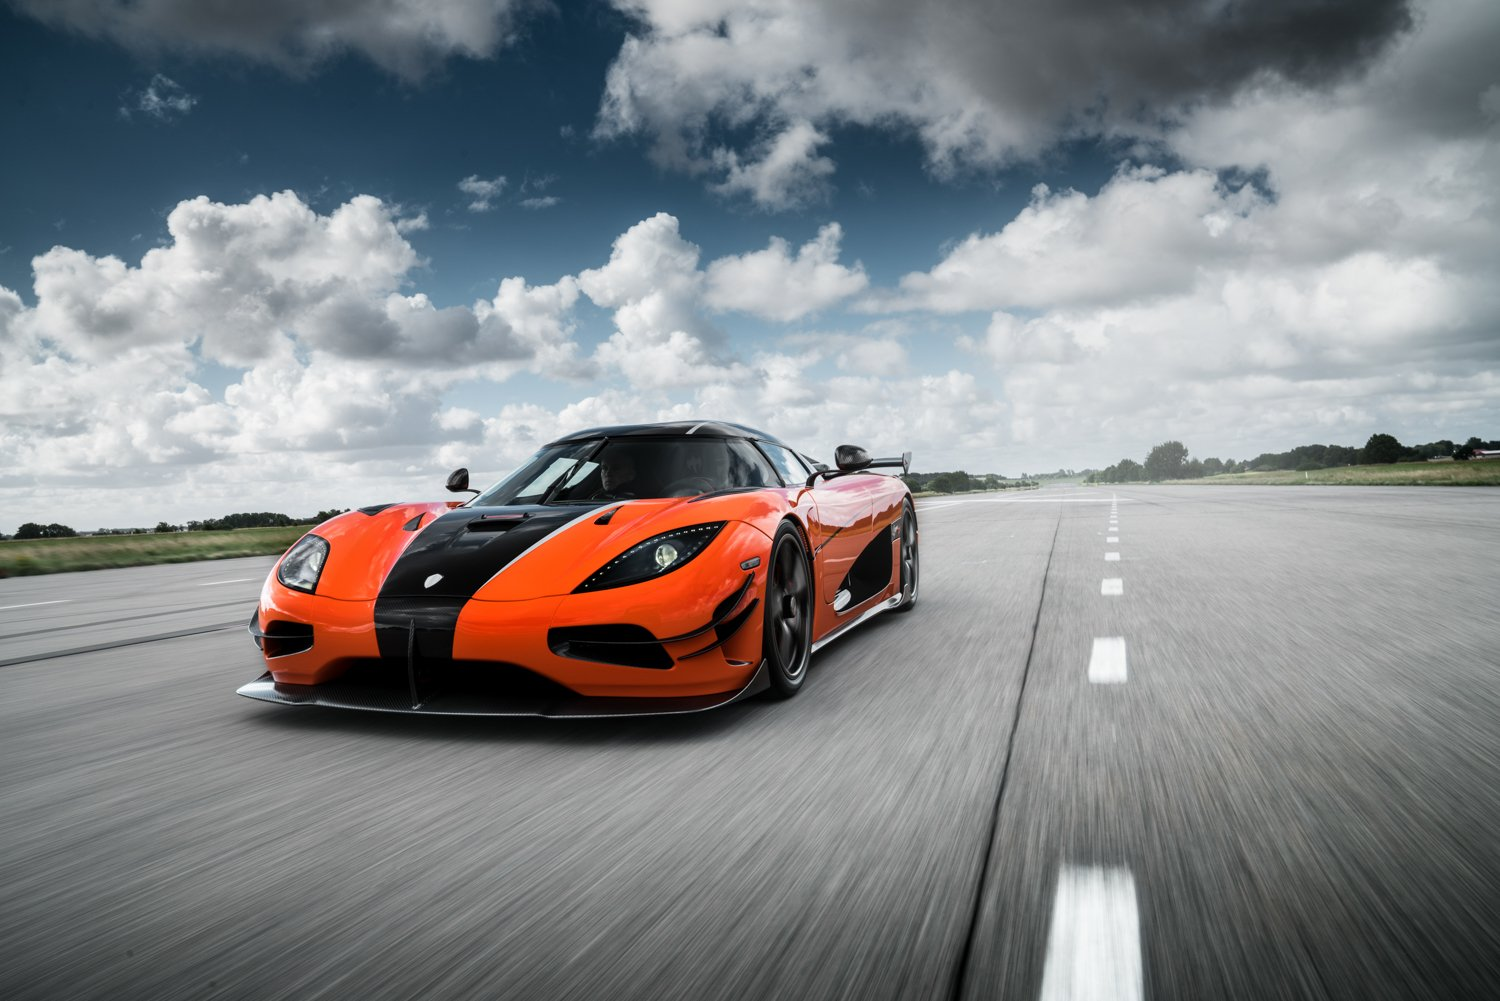 Koenigsegg koenigsegg agera r interior : The First US-Bound Koenigsegg Agera RS Arrives this Week in ...